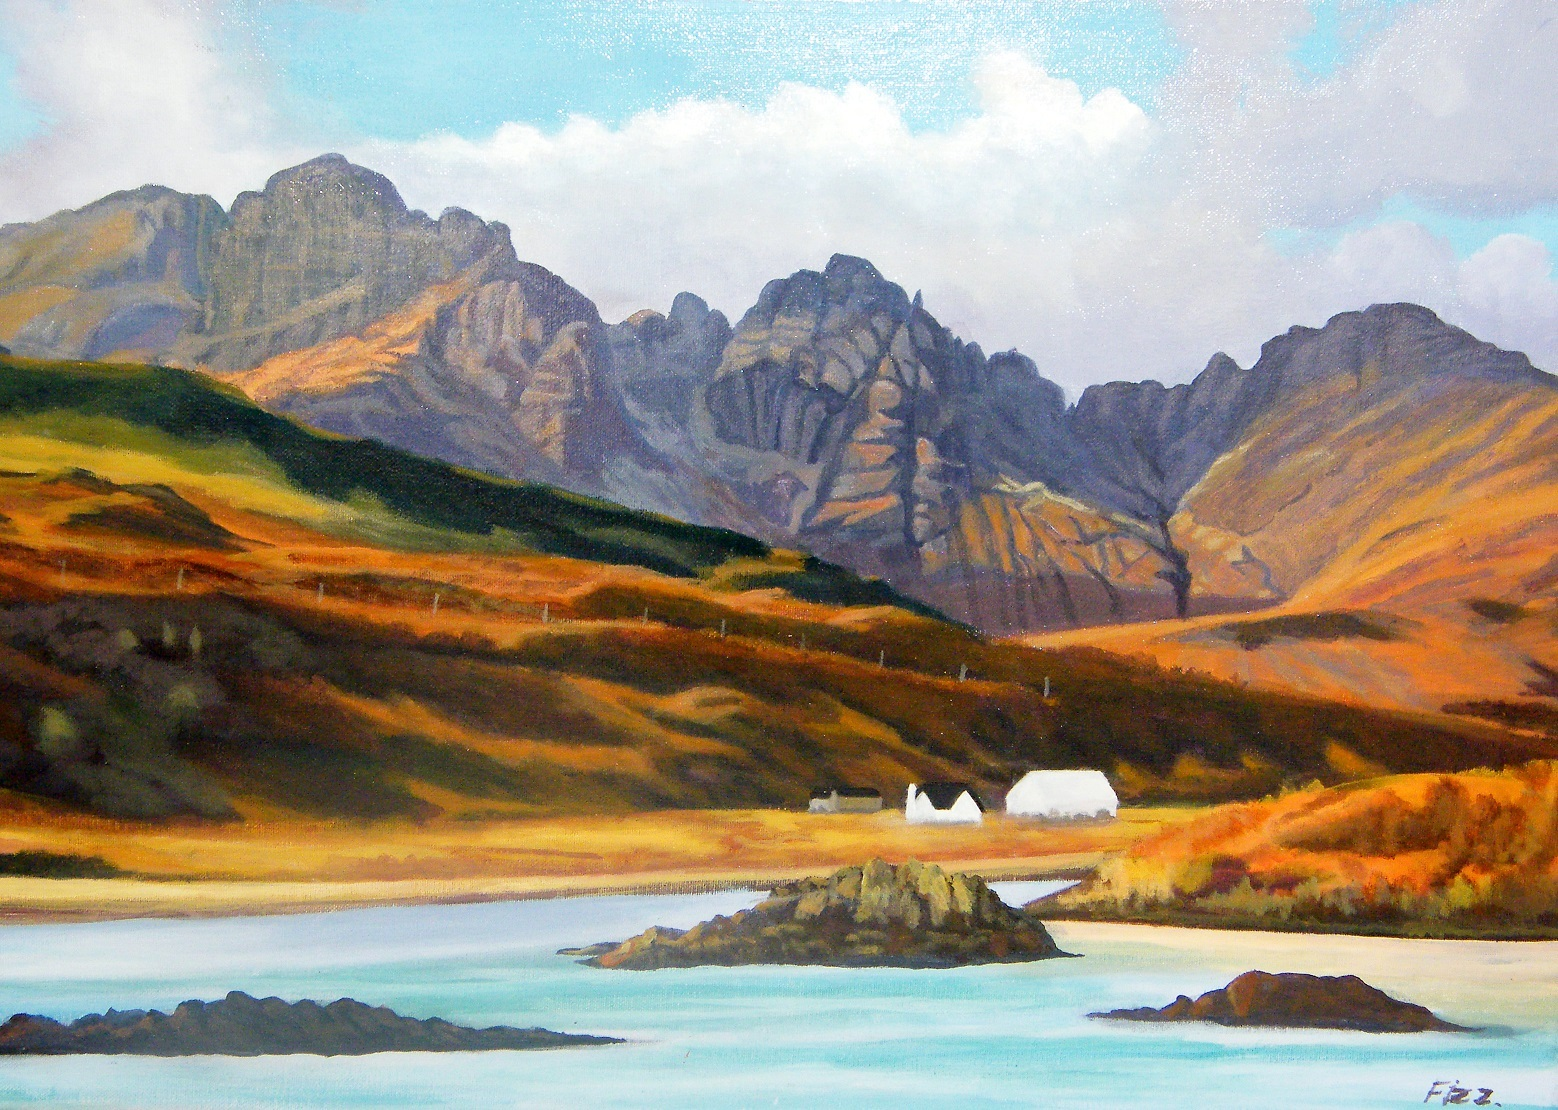 Previous winner: Blue Hills of Skye by William Fizzell.